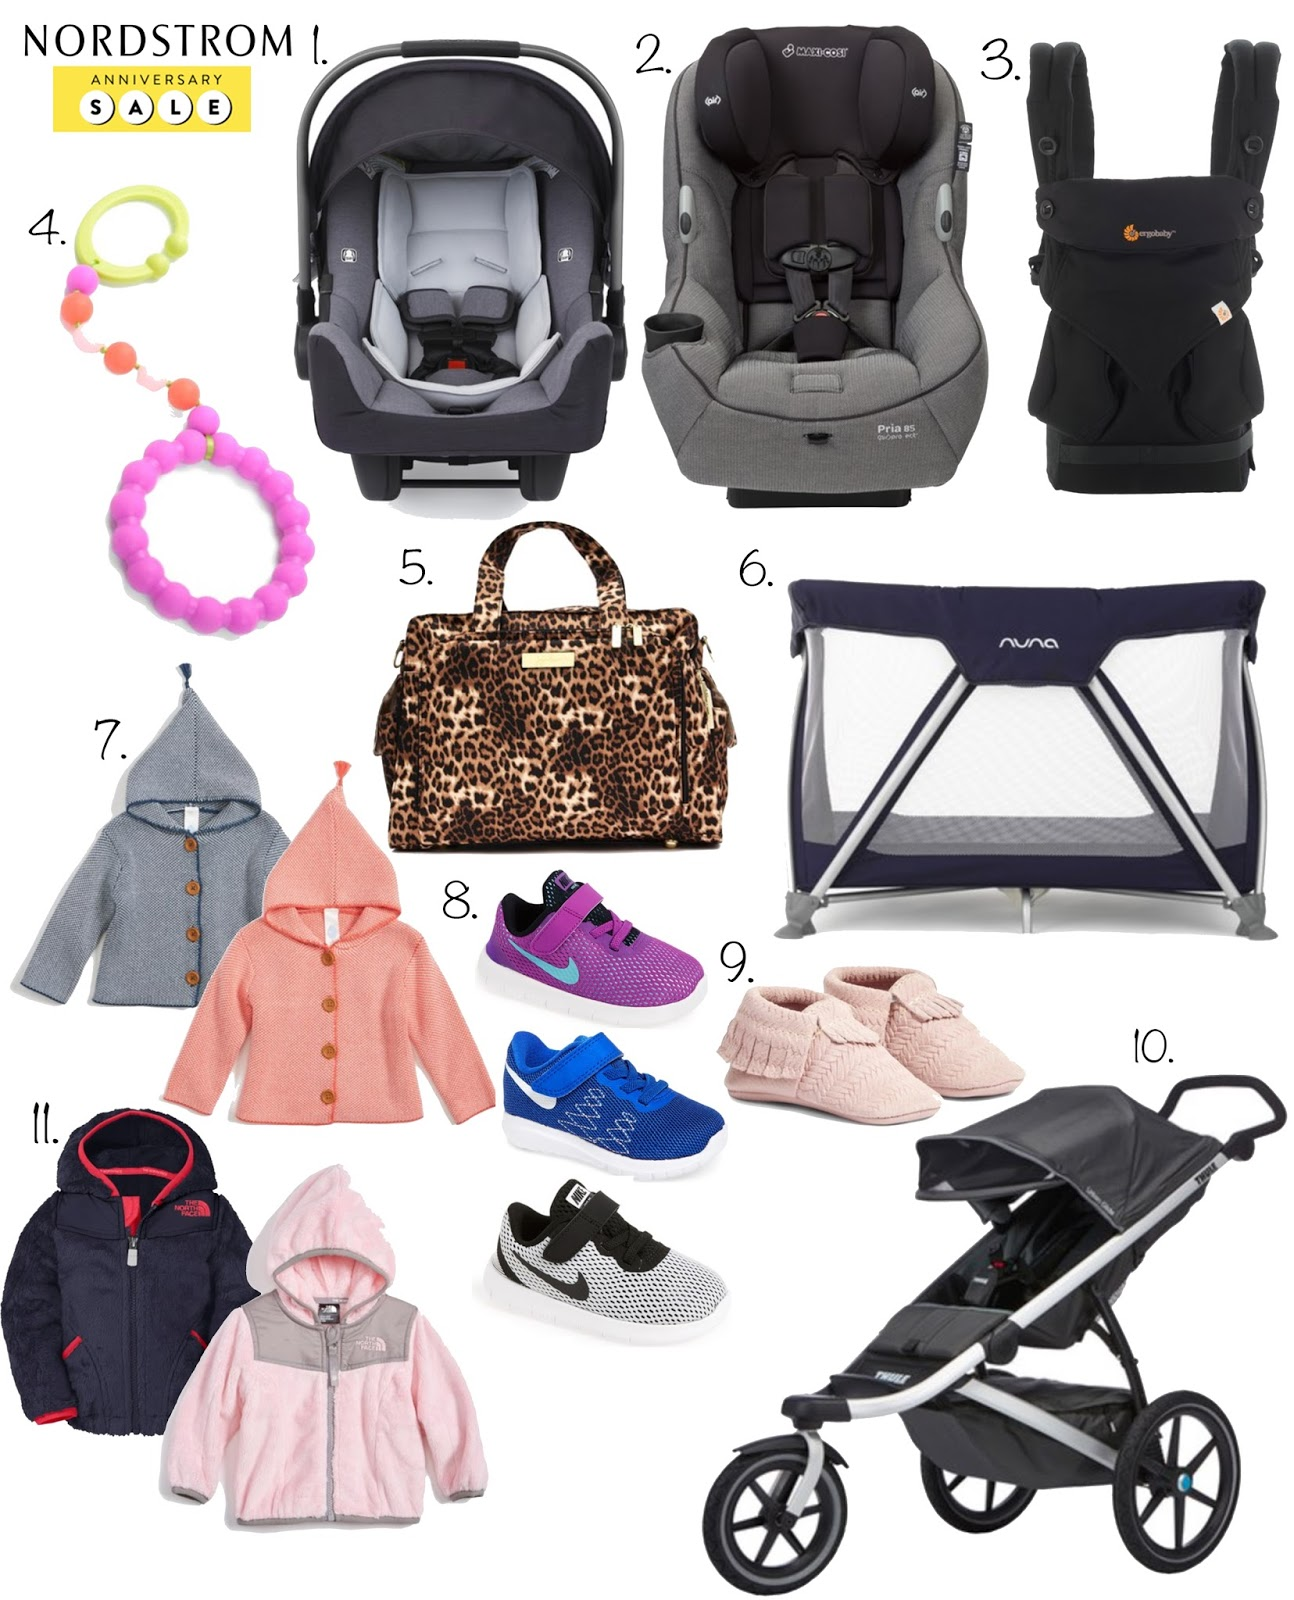 Nordstrom Anniversary Sale for Babies